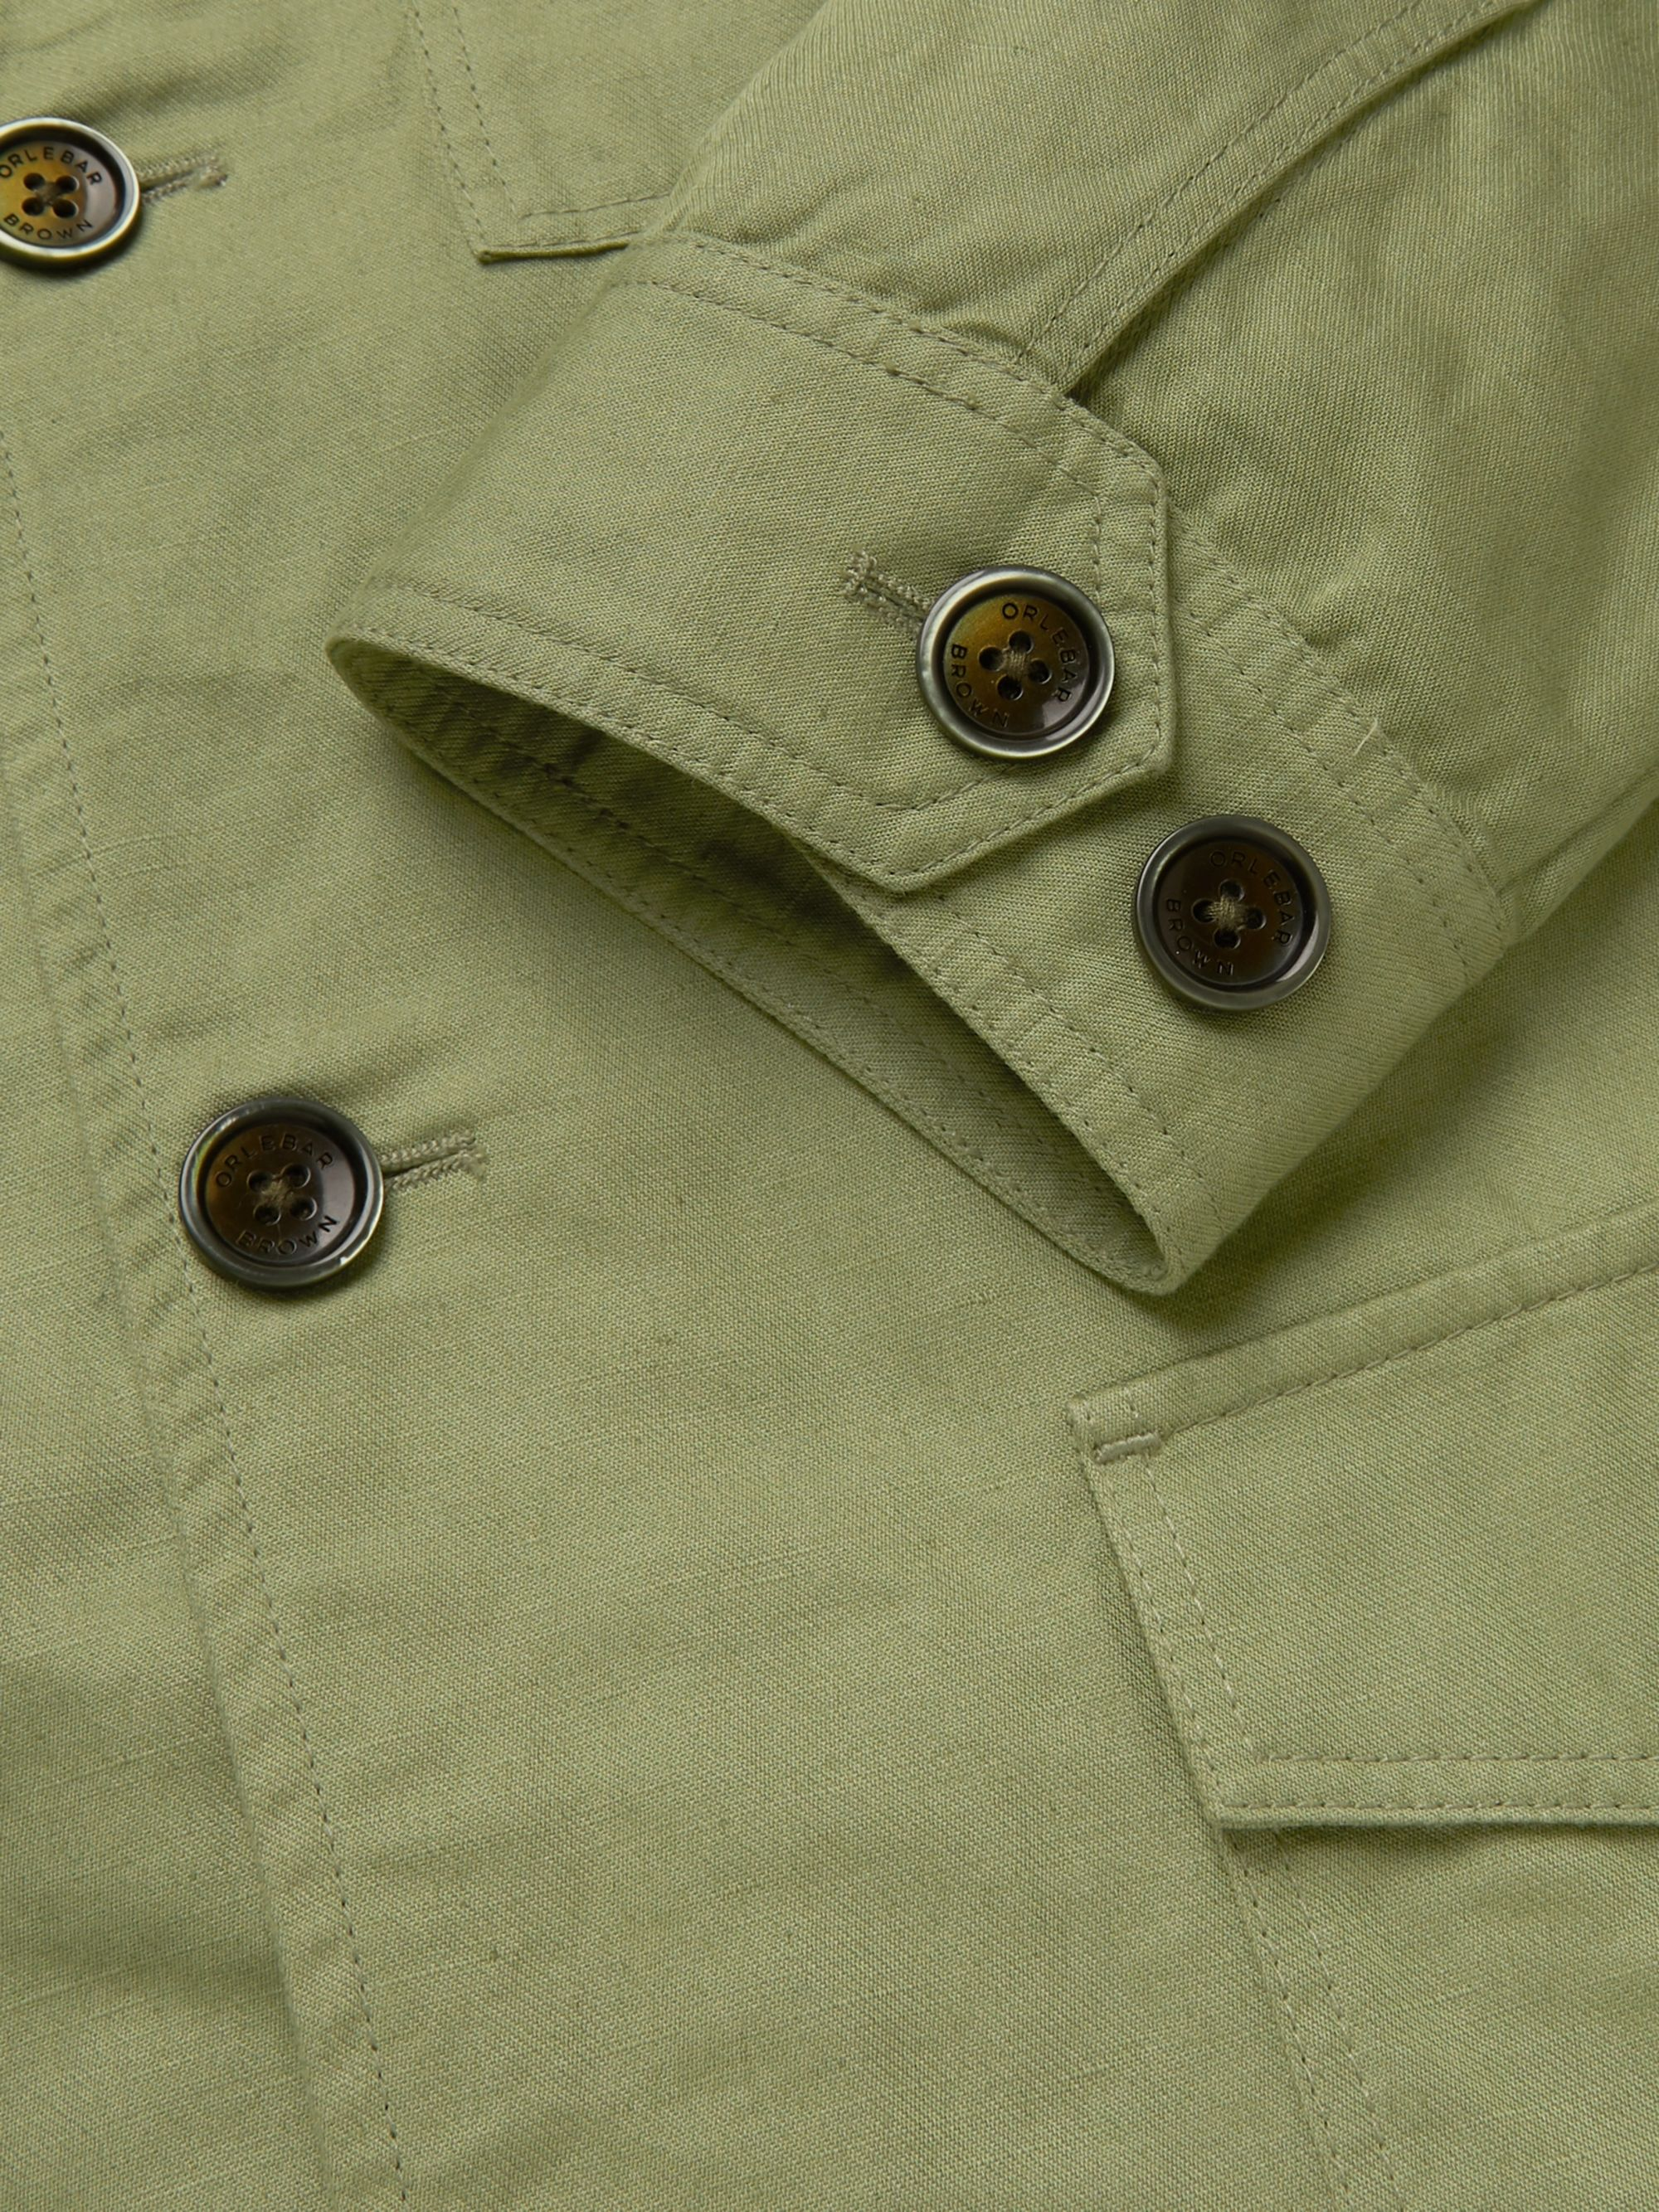 Orlebar Brown + 007 The Man with the Golden Gun Cotton and Linen-Blend Twill Jacket